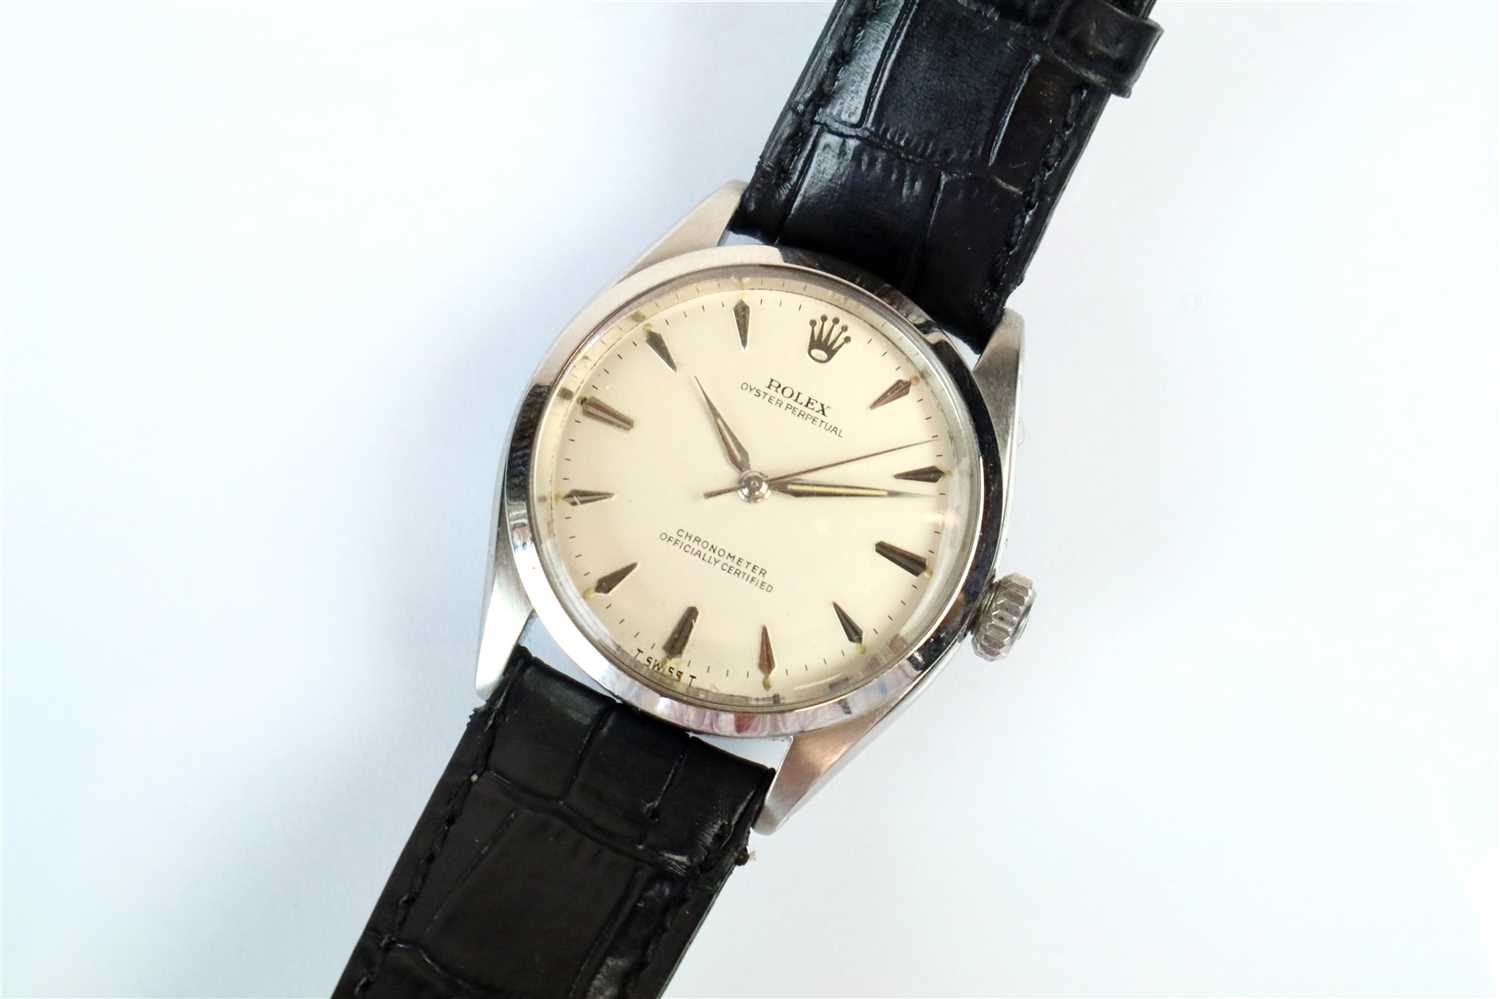 355 - A Rolex Oyster Perpetual Ref. 6284